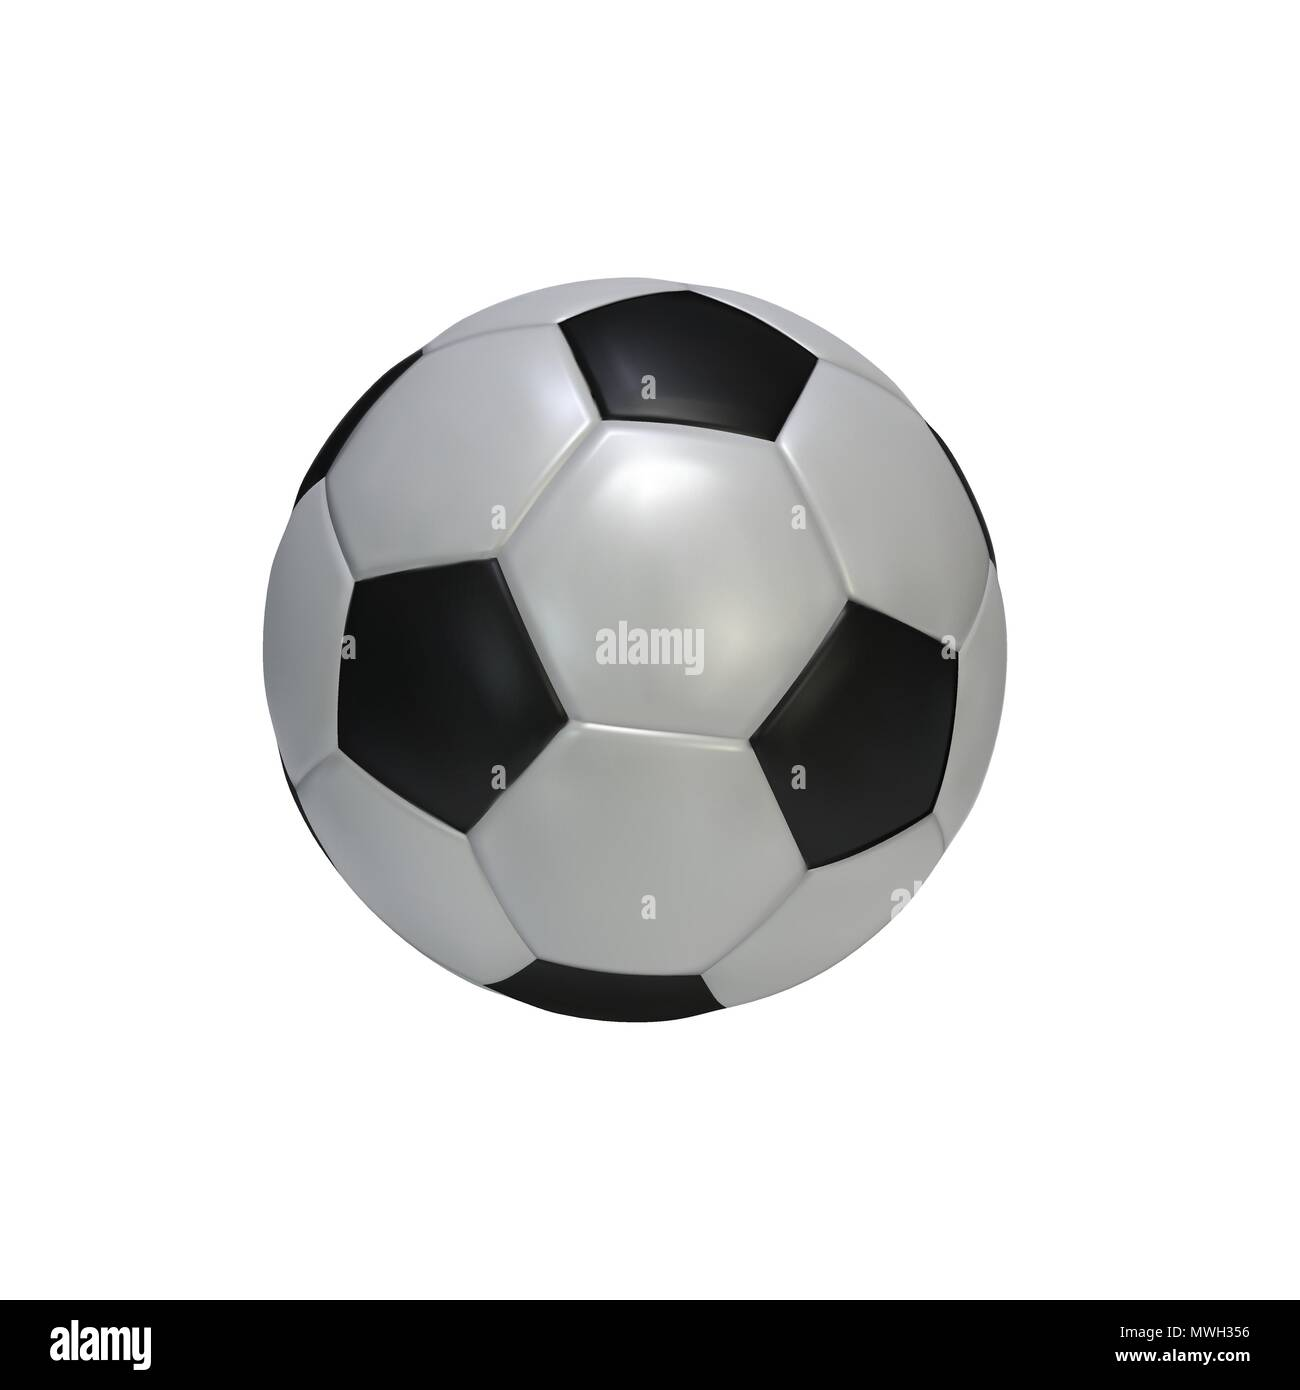 Realistic soccer ball isolated on white background. Black and white classic leather football ball.  Vector illustration - Stock Image